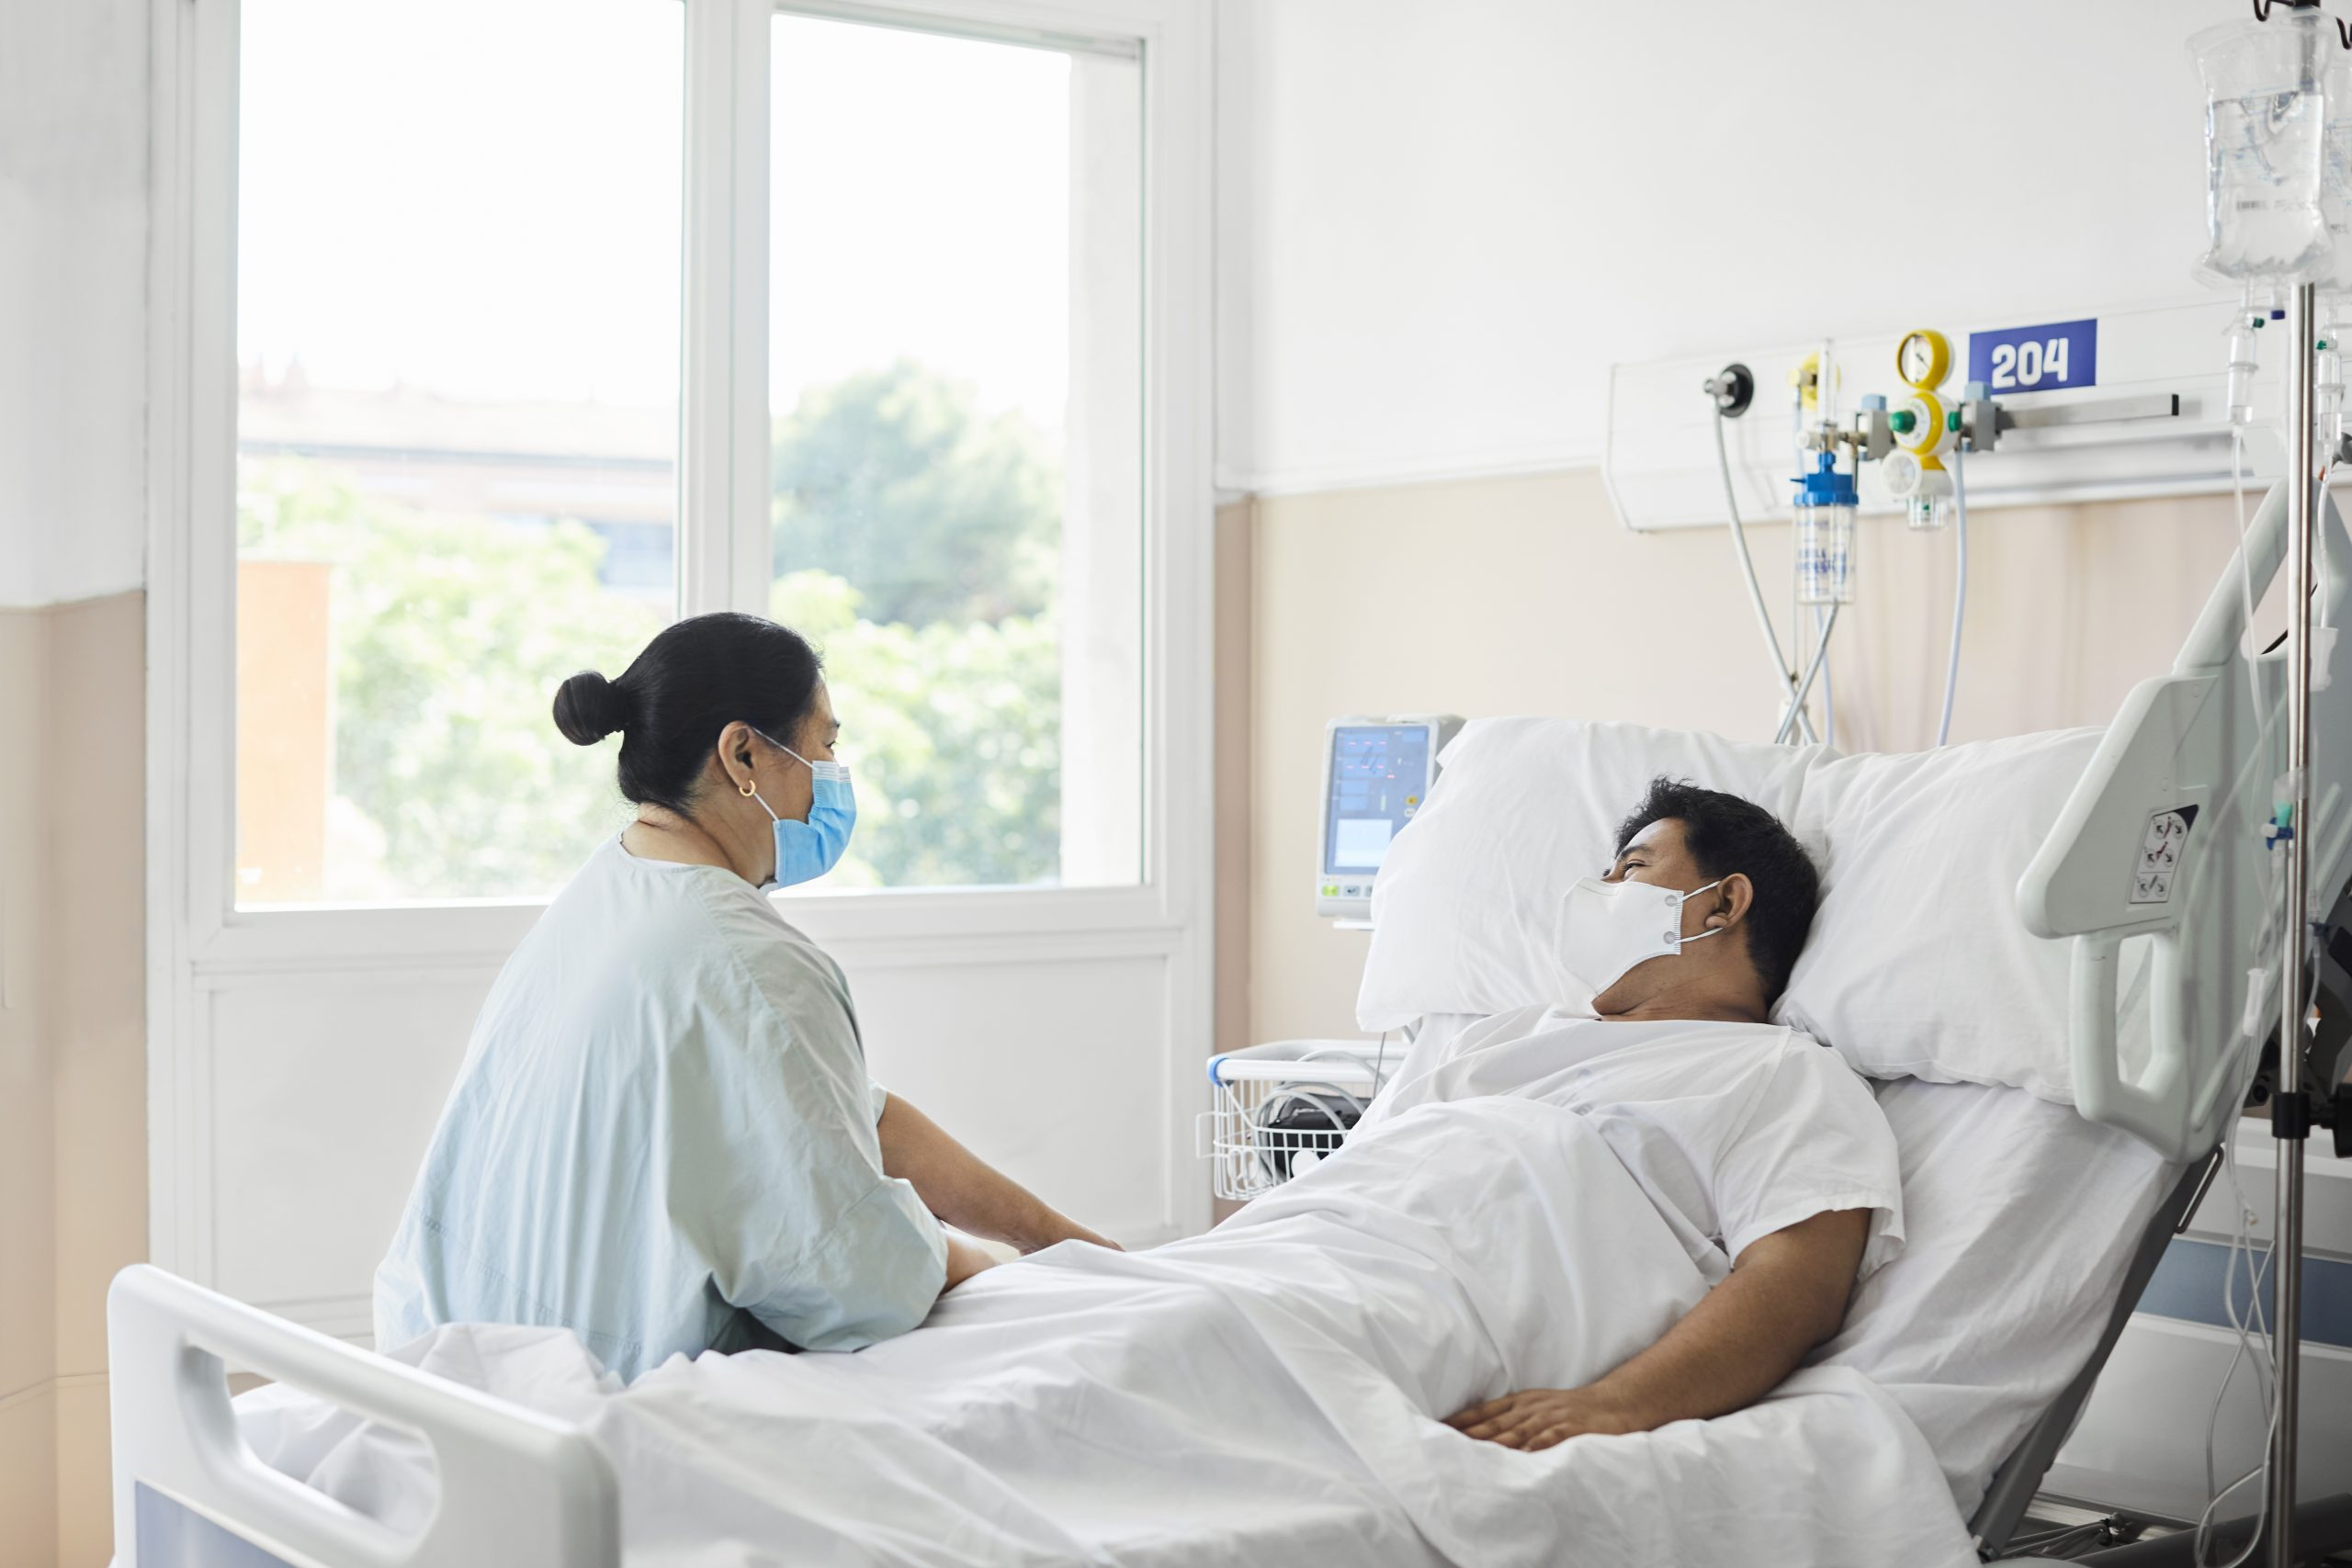 Visitors waiting in healthcare facility